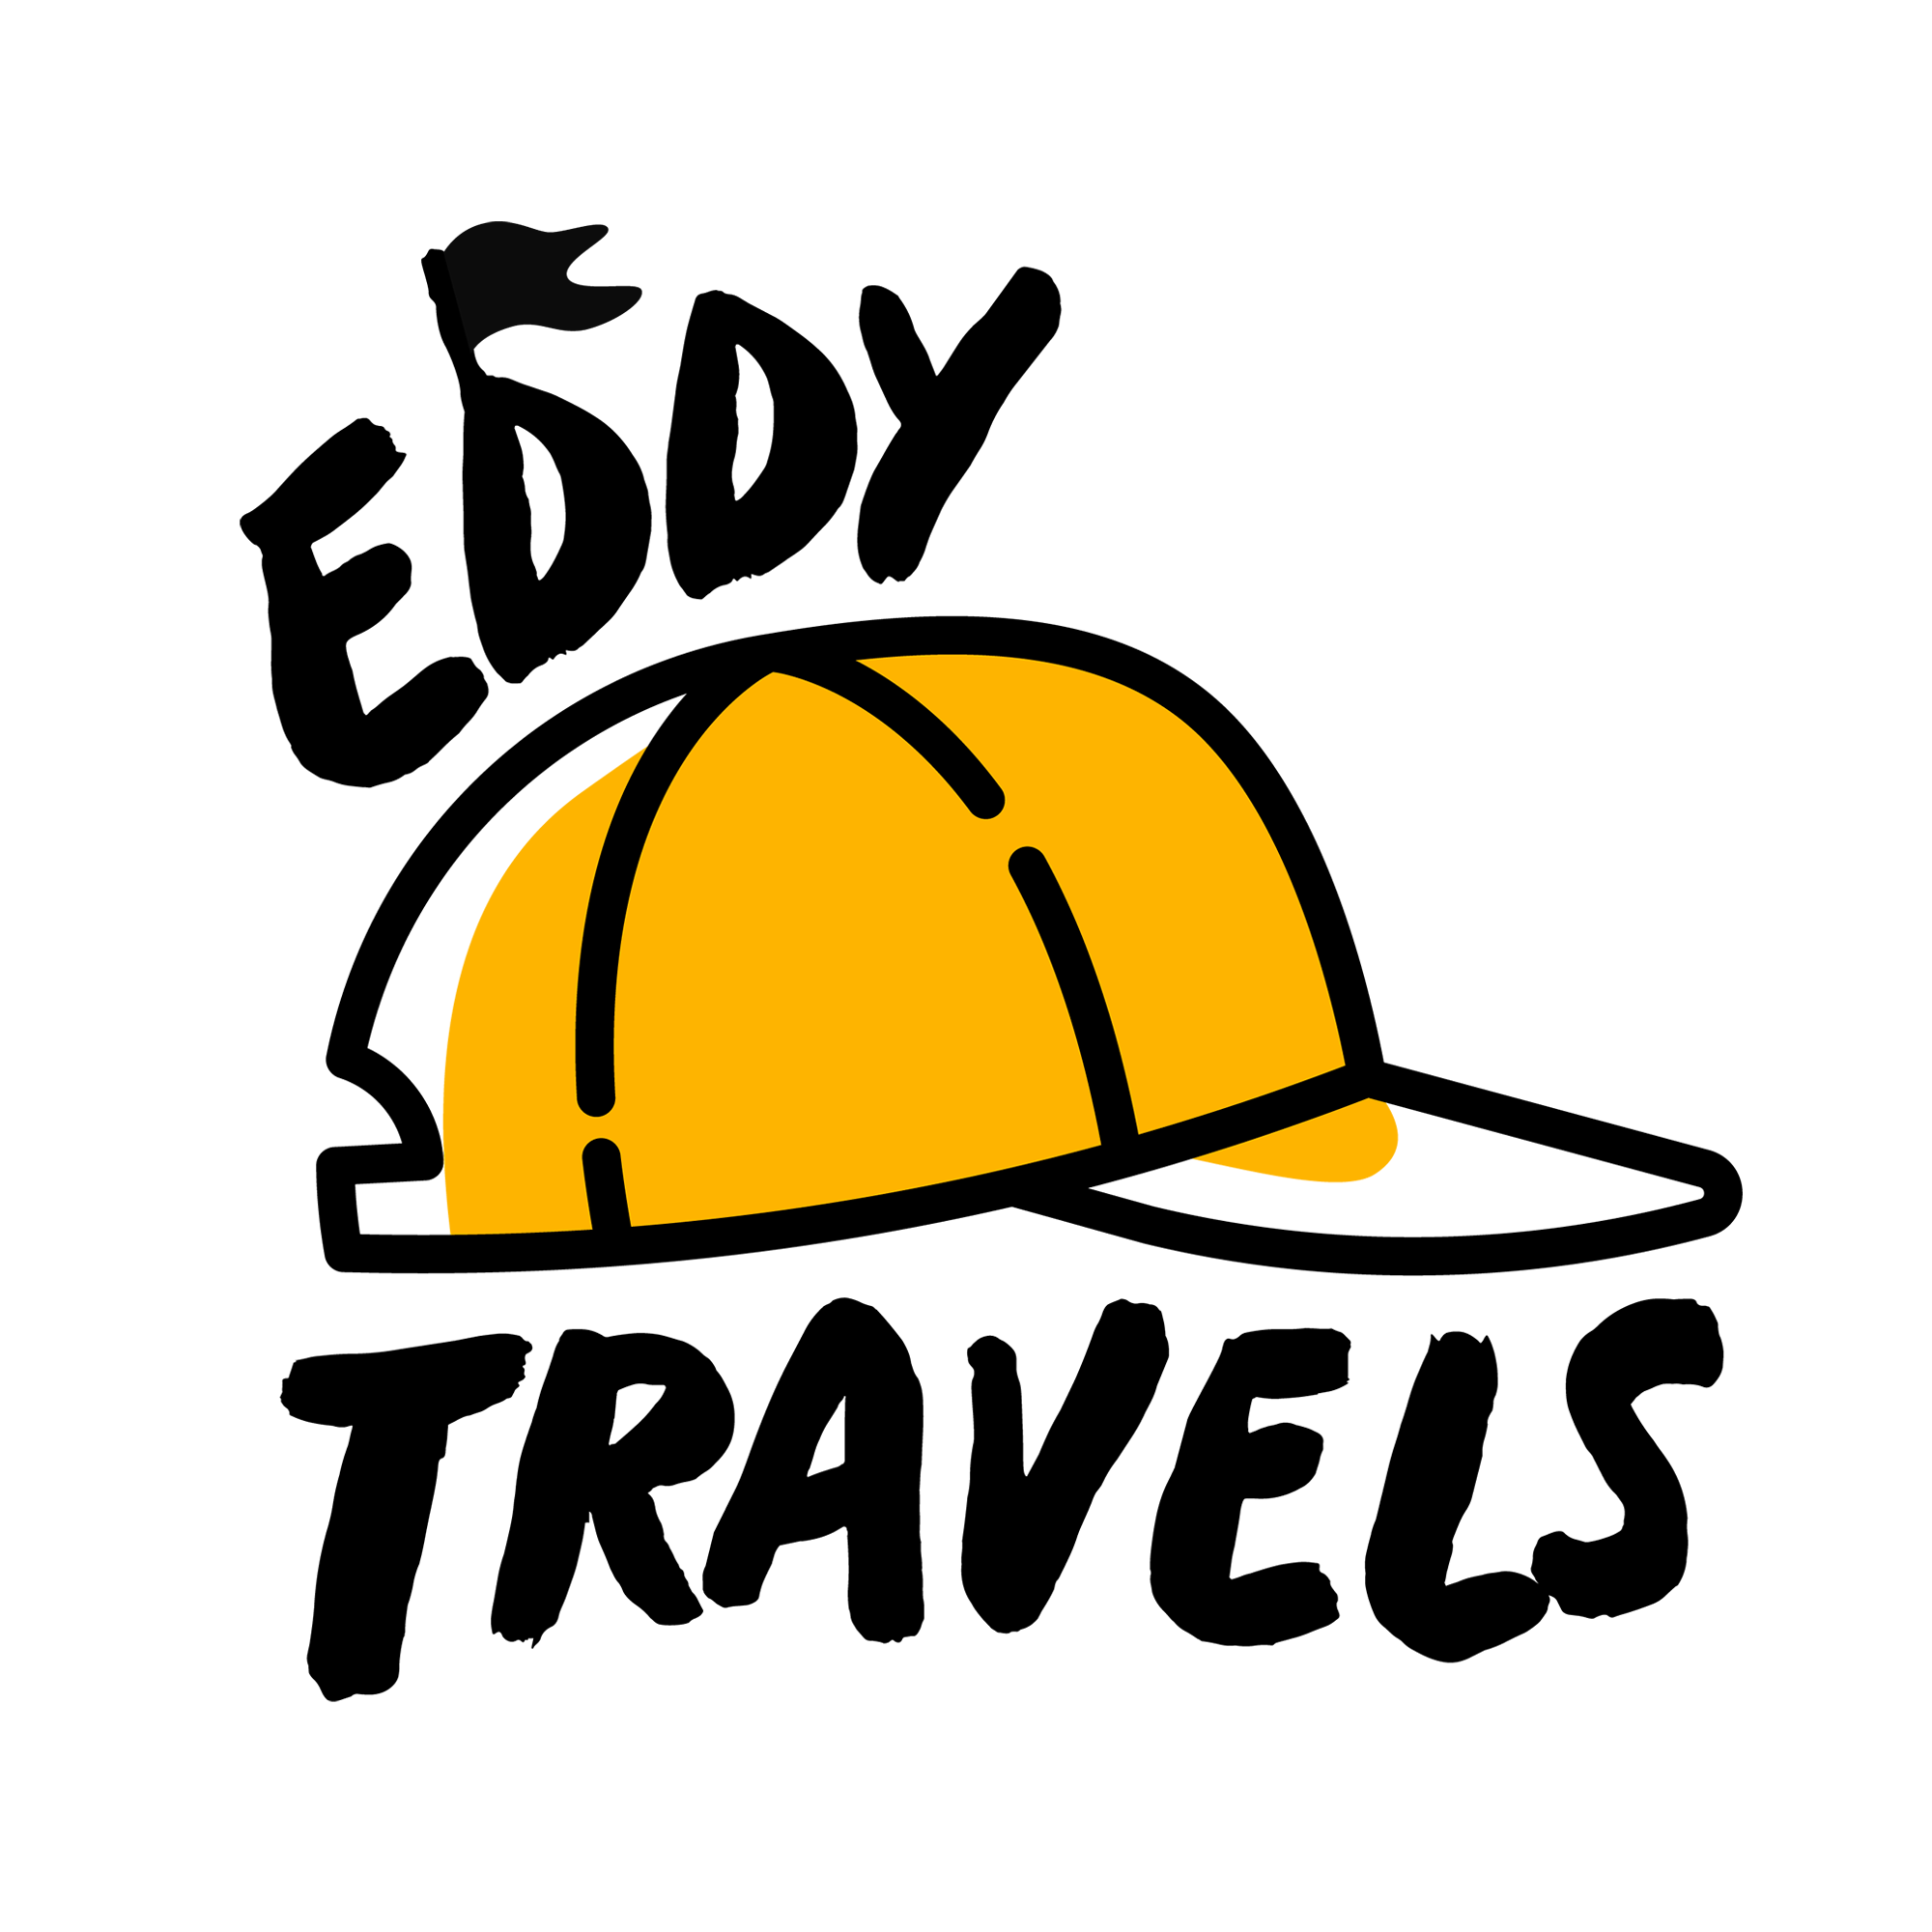 Eddy Travels - AI Travel Assistant on WhatsApp Bot for Web